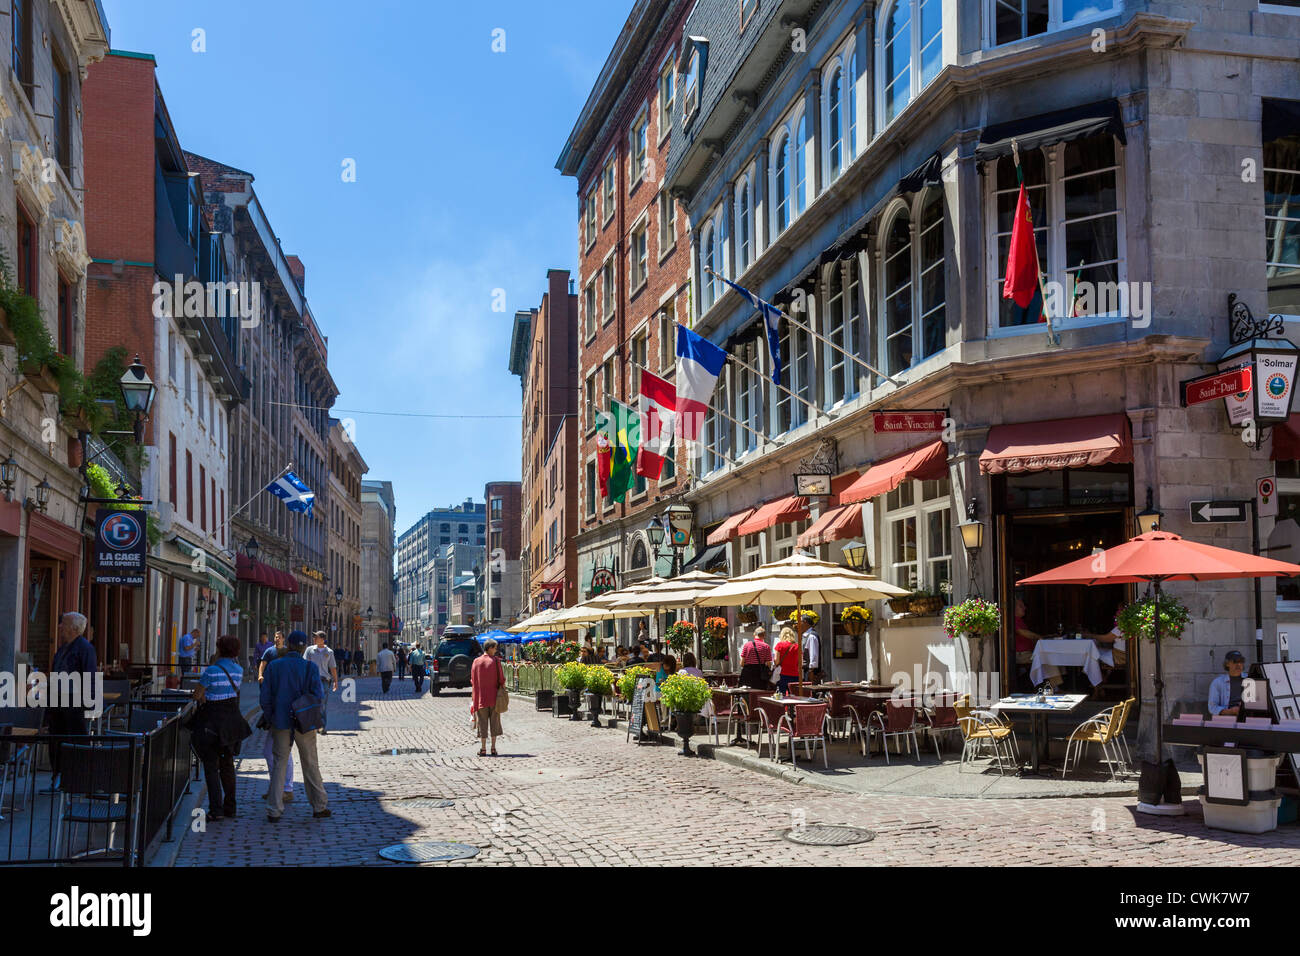 Quebec Montreal Bars Cafes And Restaurants Along Rue St Paul Montreal Quebec